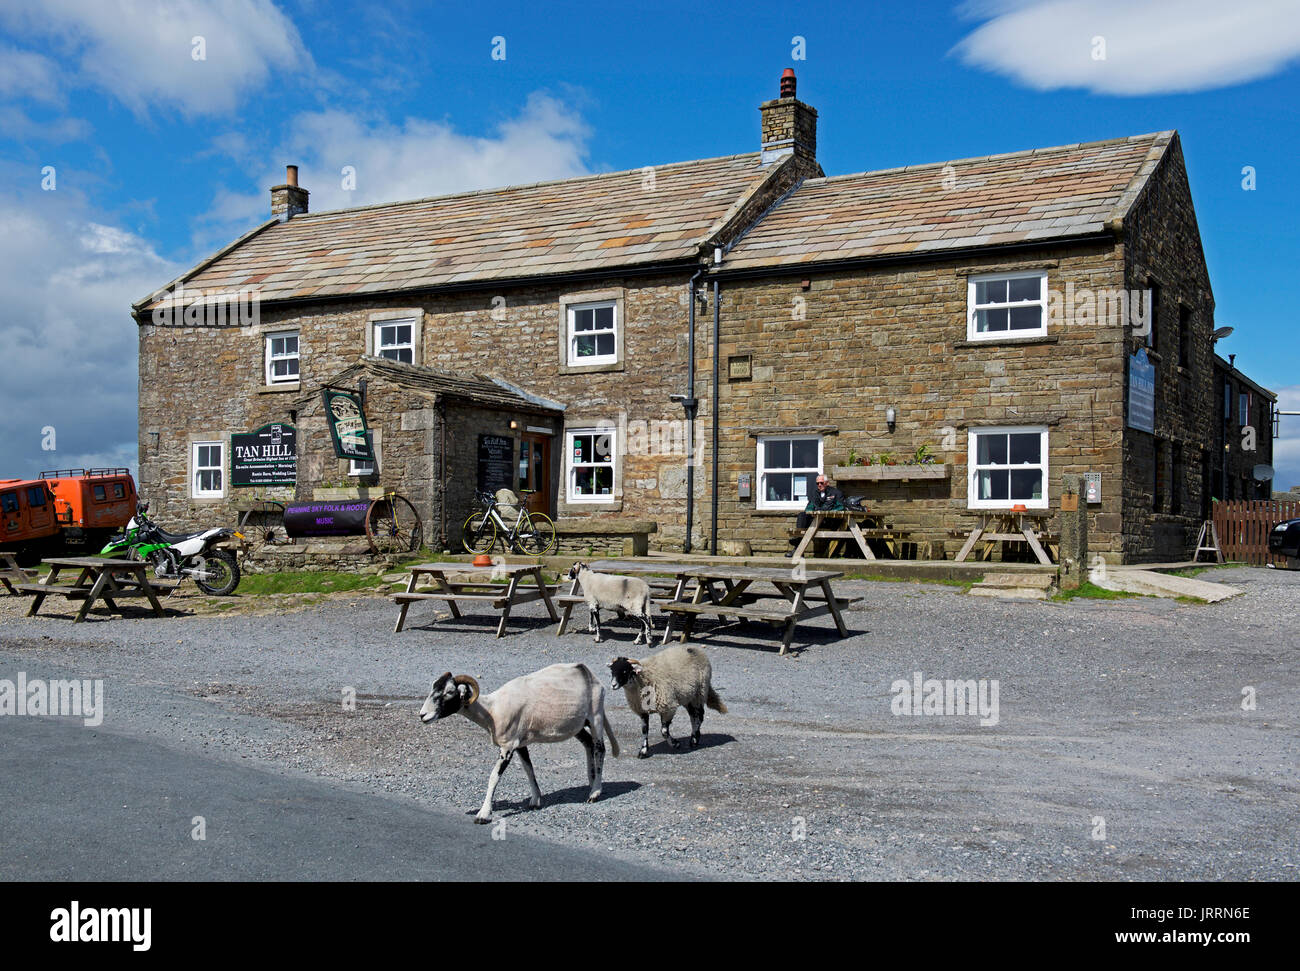 sheep-crossing-road-at-the-tan-hill-inn-the-highest-pub-in-the-country-JRRN6E.jpg